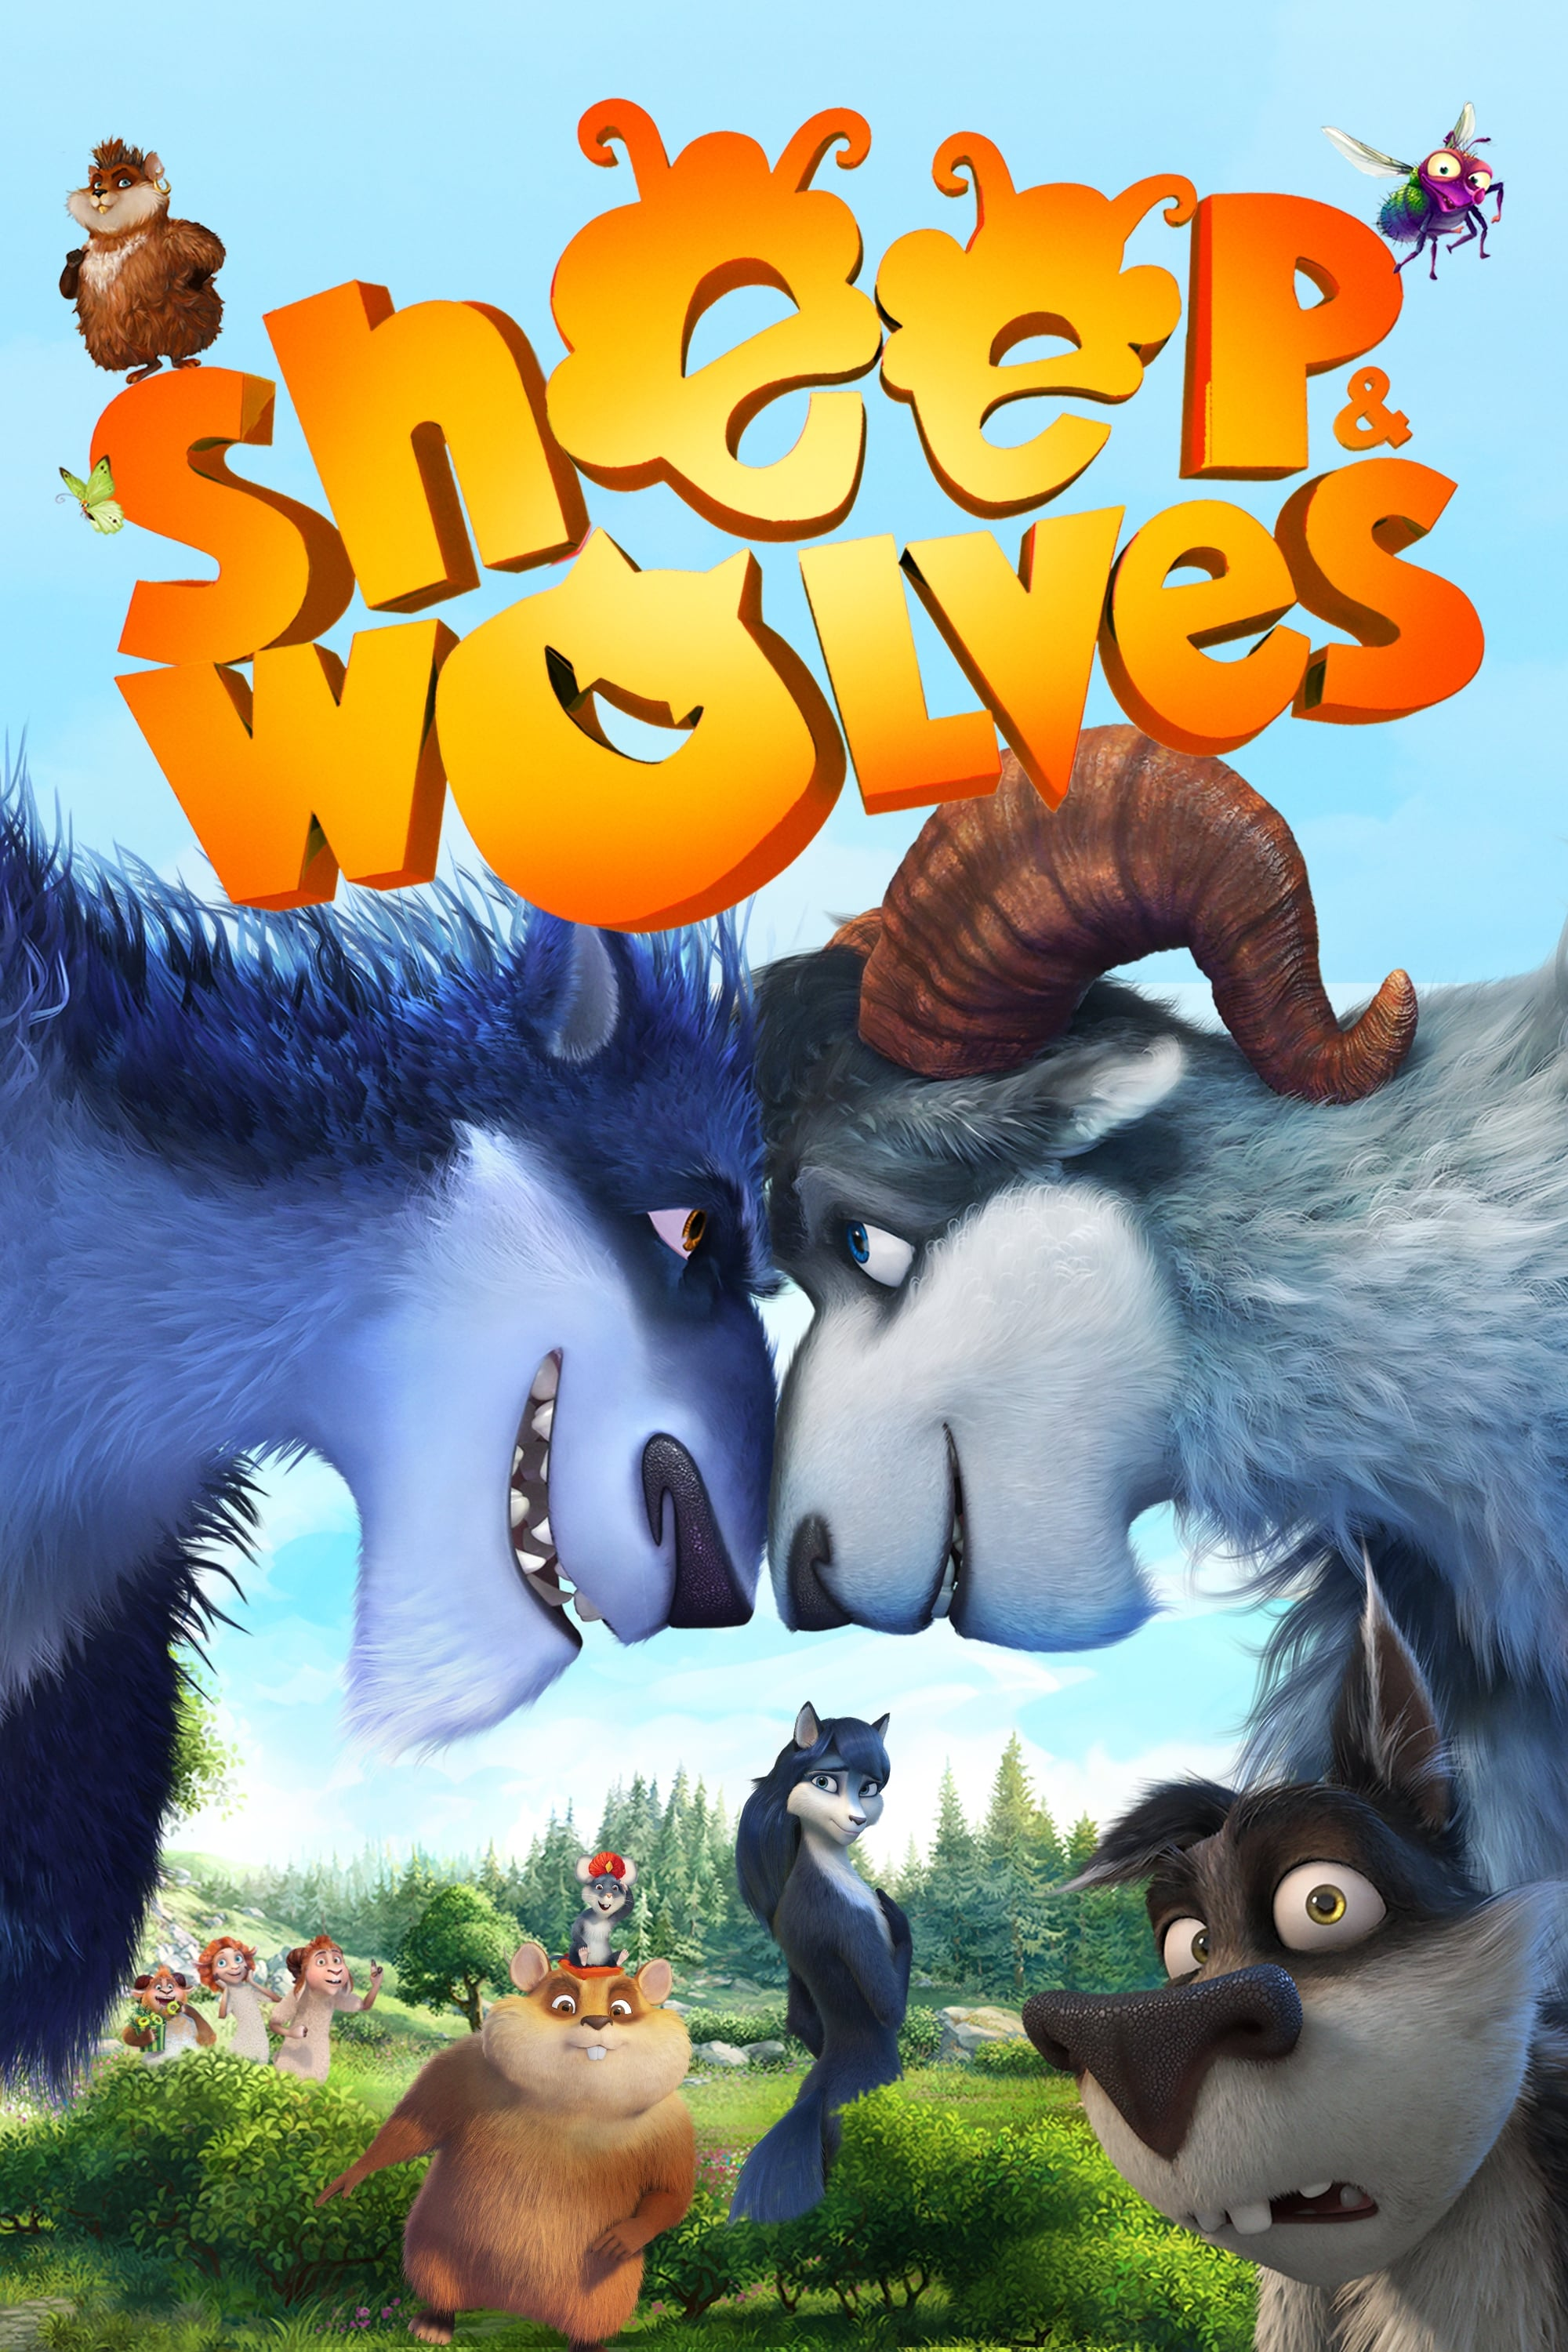 Watch the streaming movie Sheep & Wolves